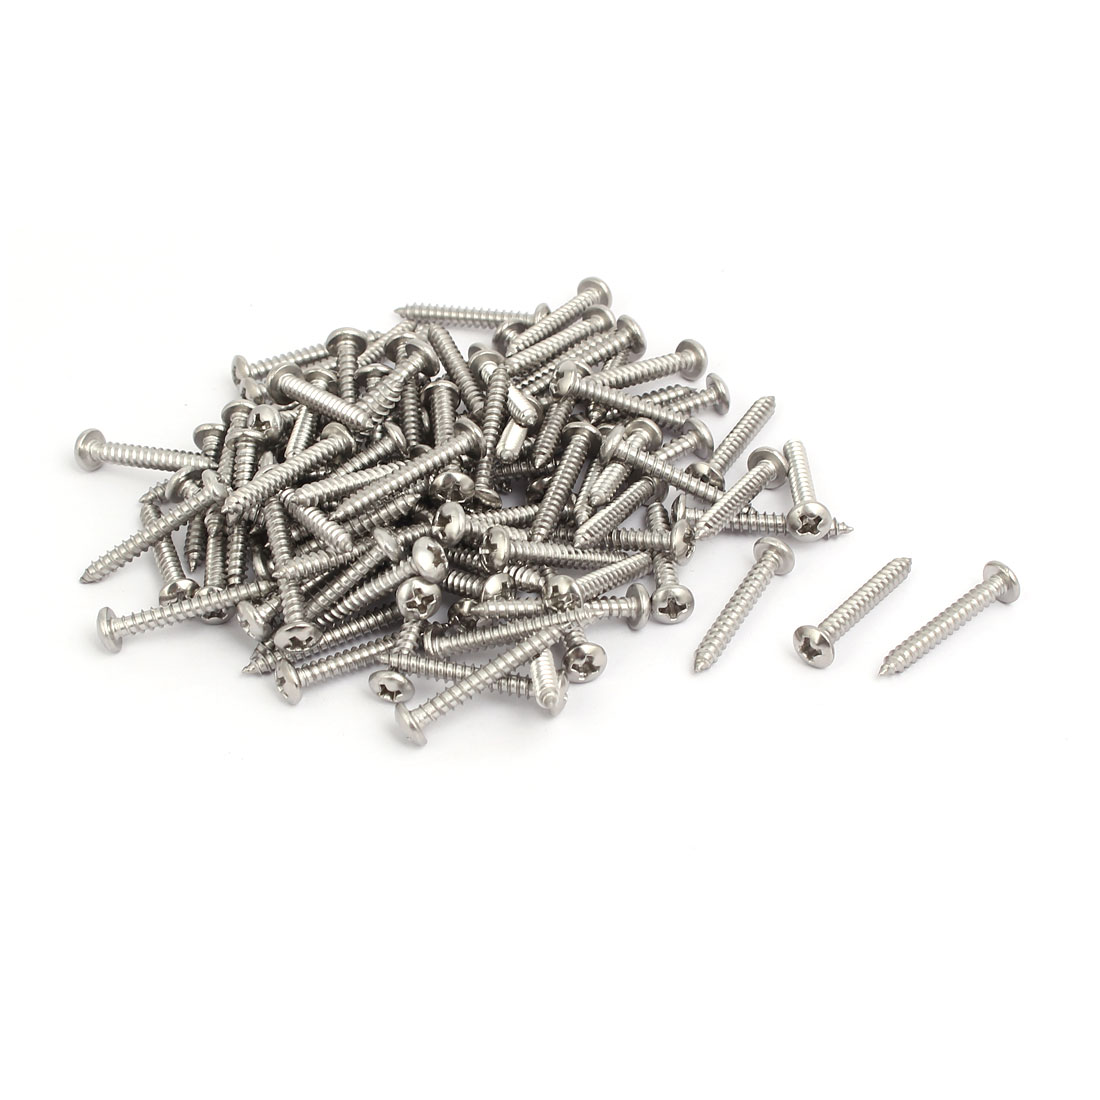 M3.5x25mm 304 Stainless Steel Phillips Round Pan Head Self Tapping Screws 100pcs